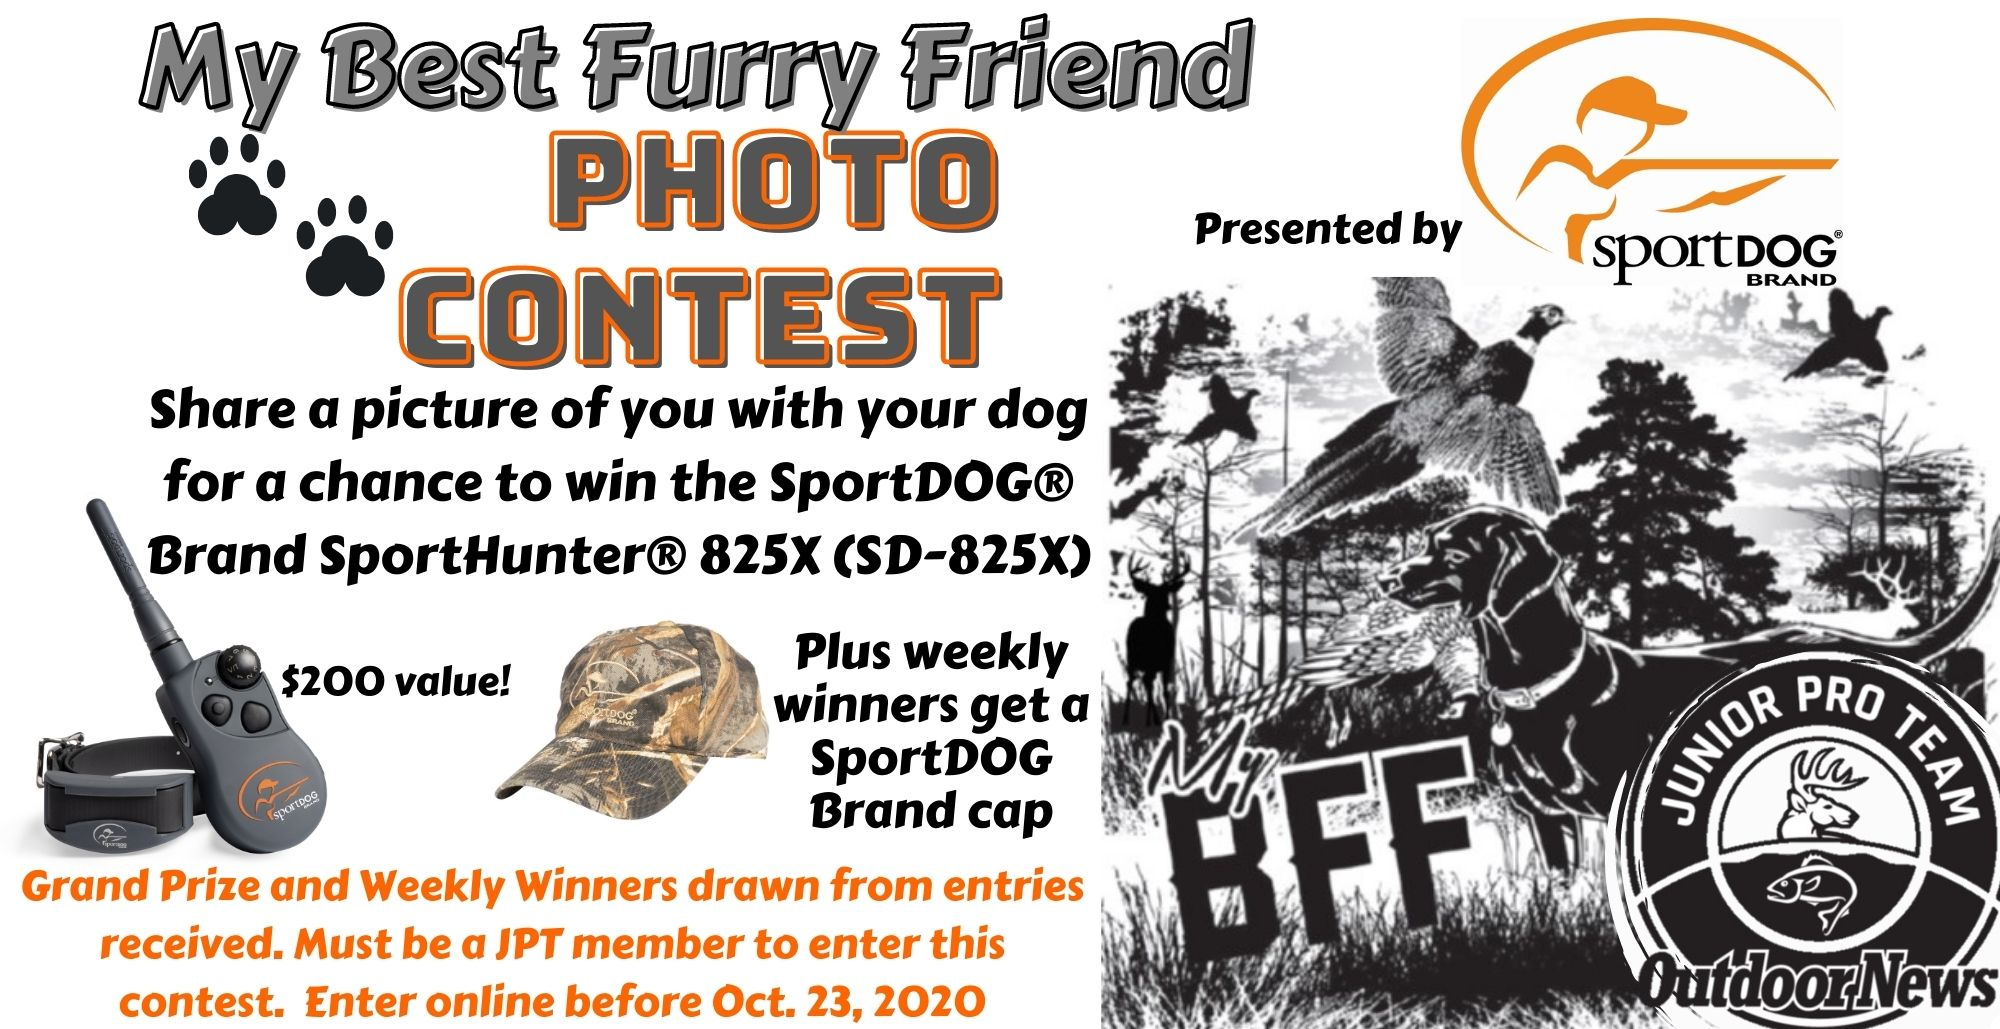 Junior Pro Team Members can enter a photo of them with their dog for a chance to win prizes from SportDOG Brands in the Best Furry Friends Photo Contest!